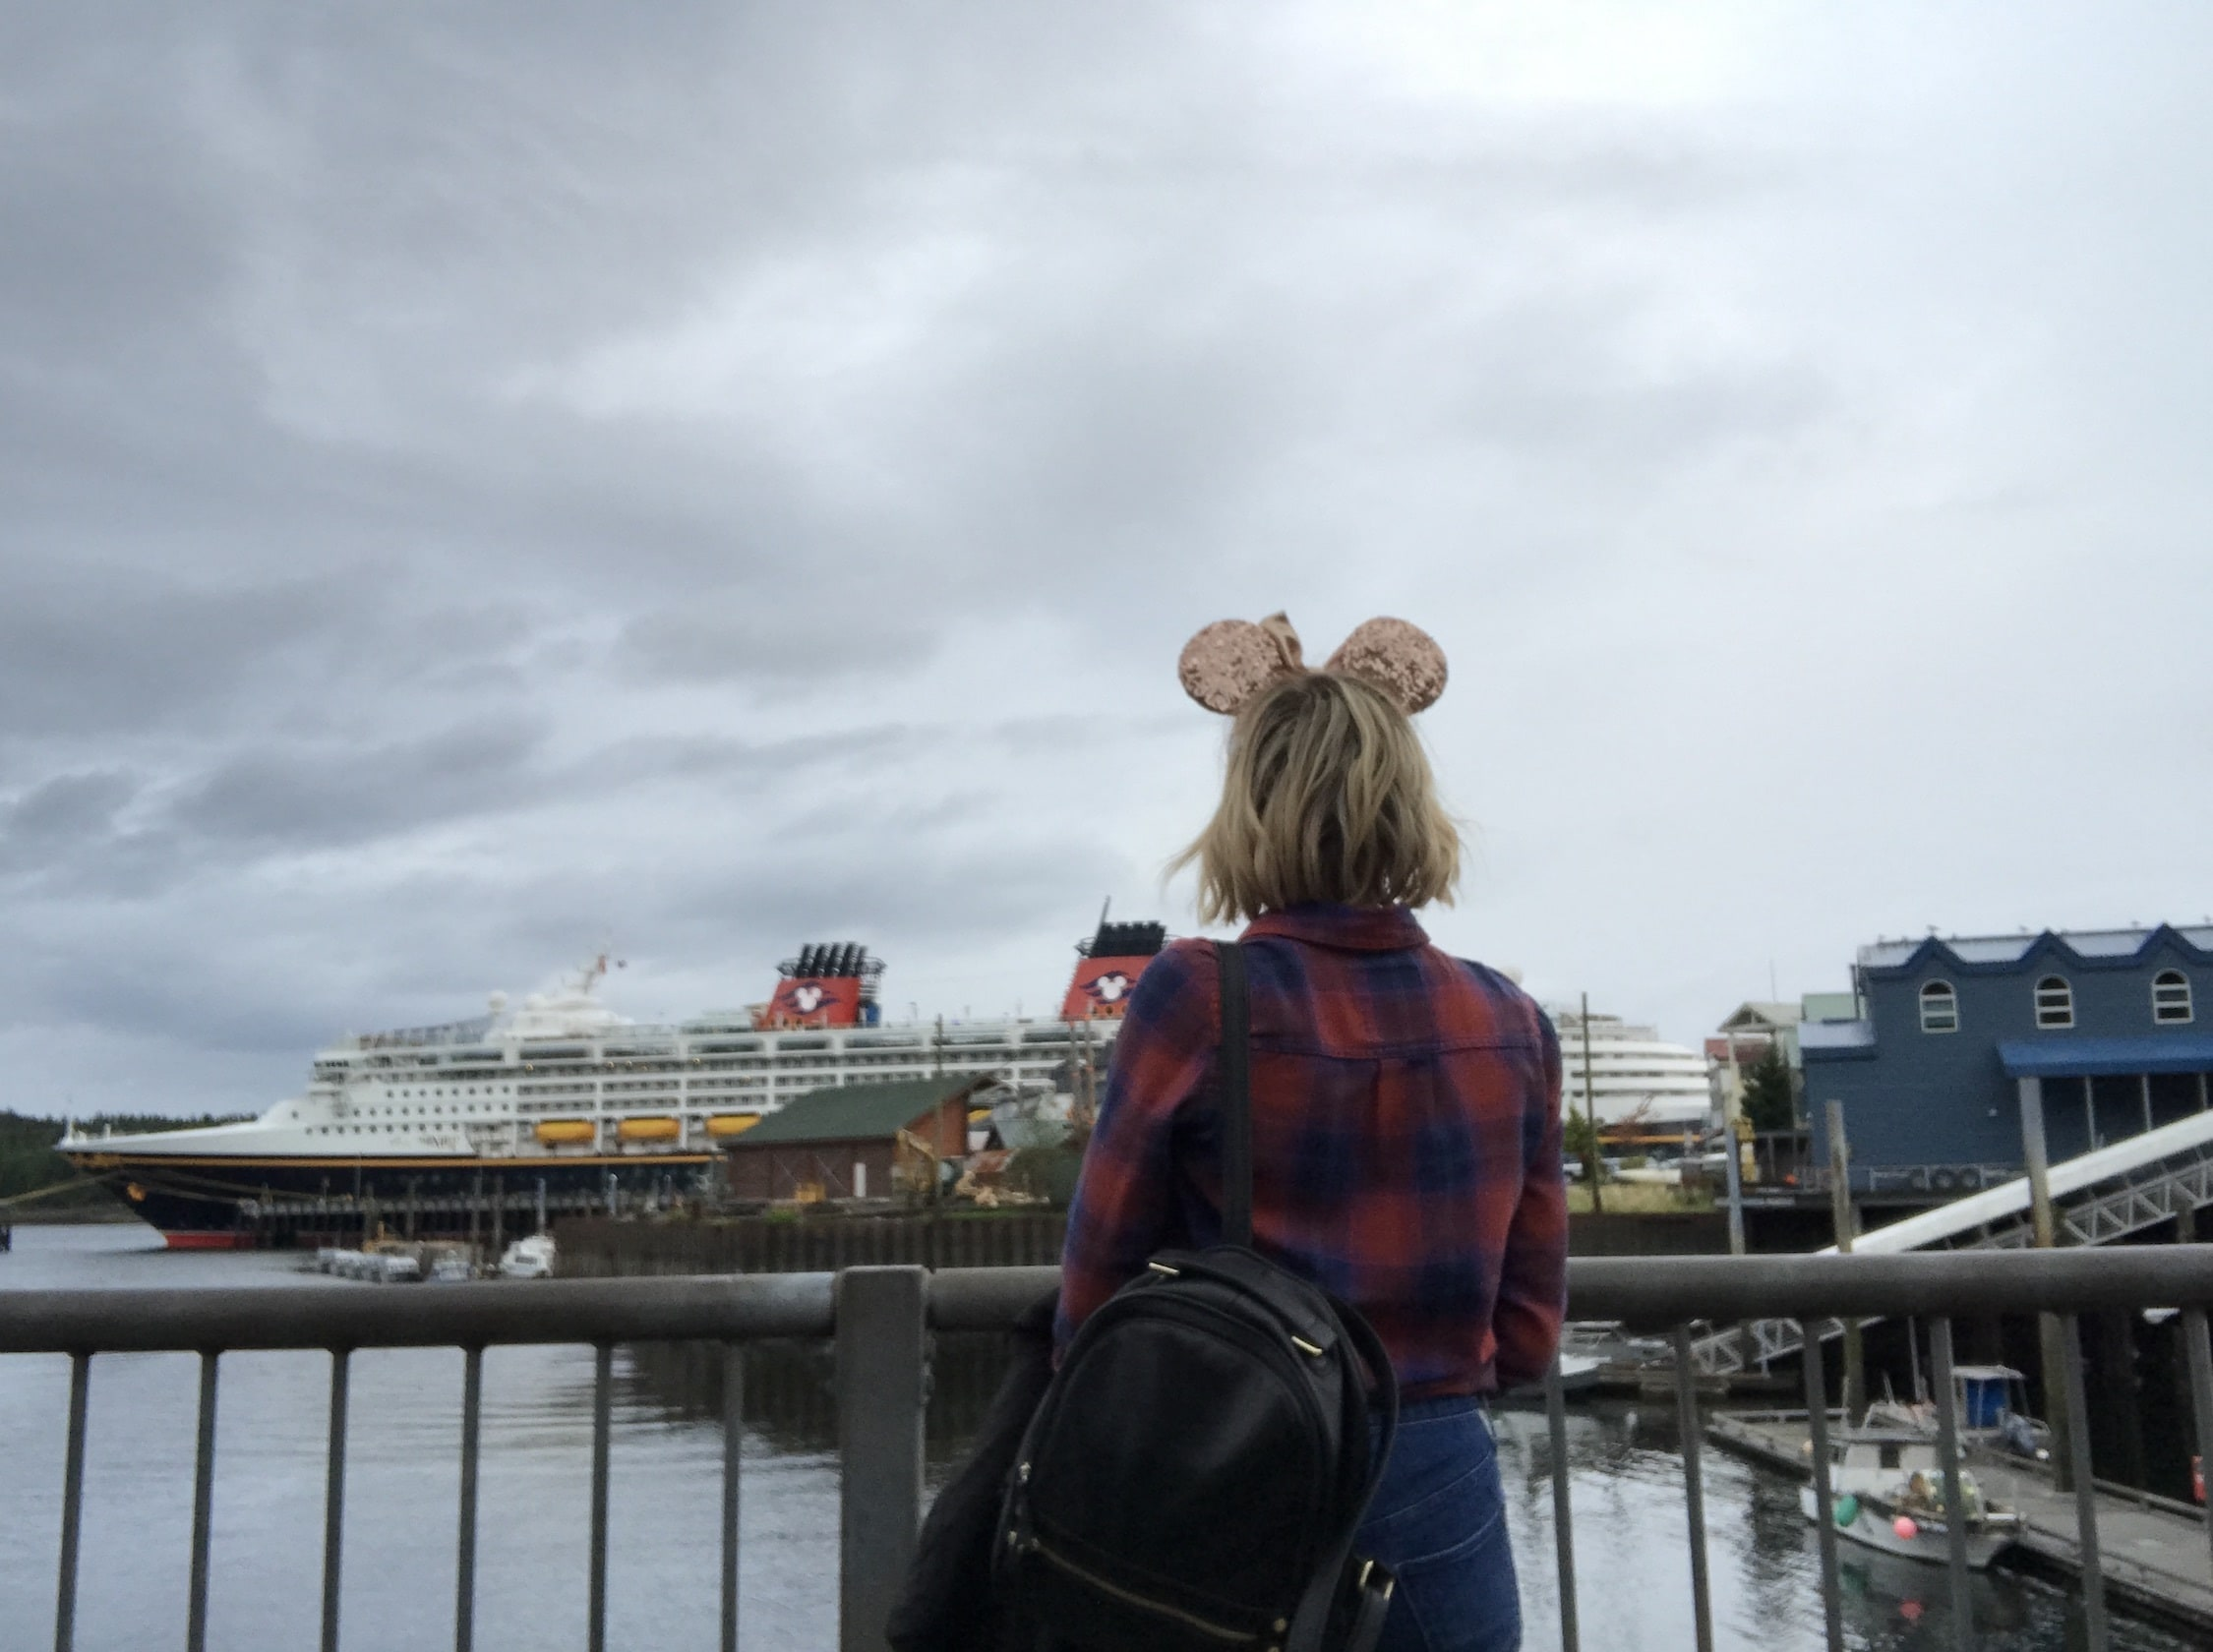 View of the Disney Wonder from Ketchikan with Host Wearing Minnie Ears